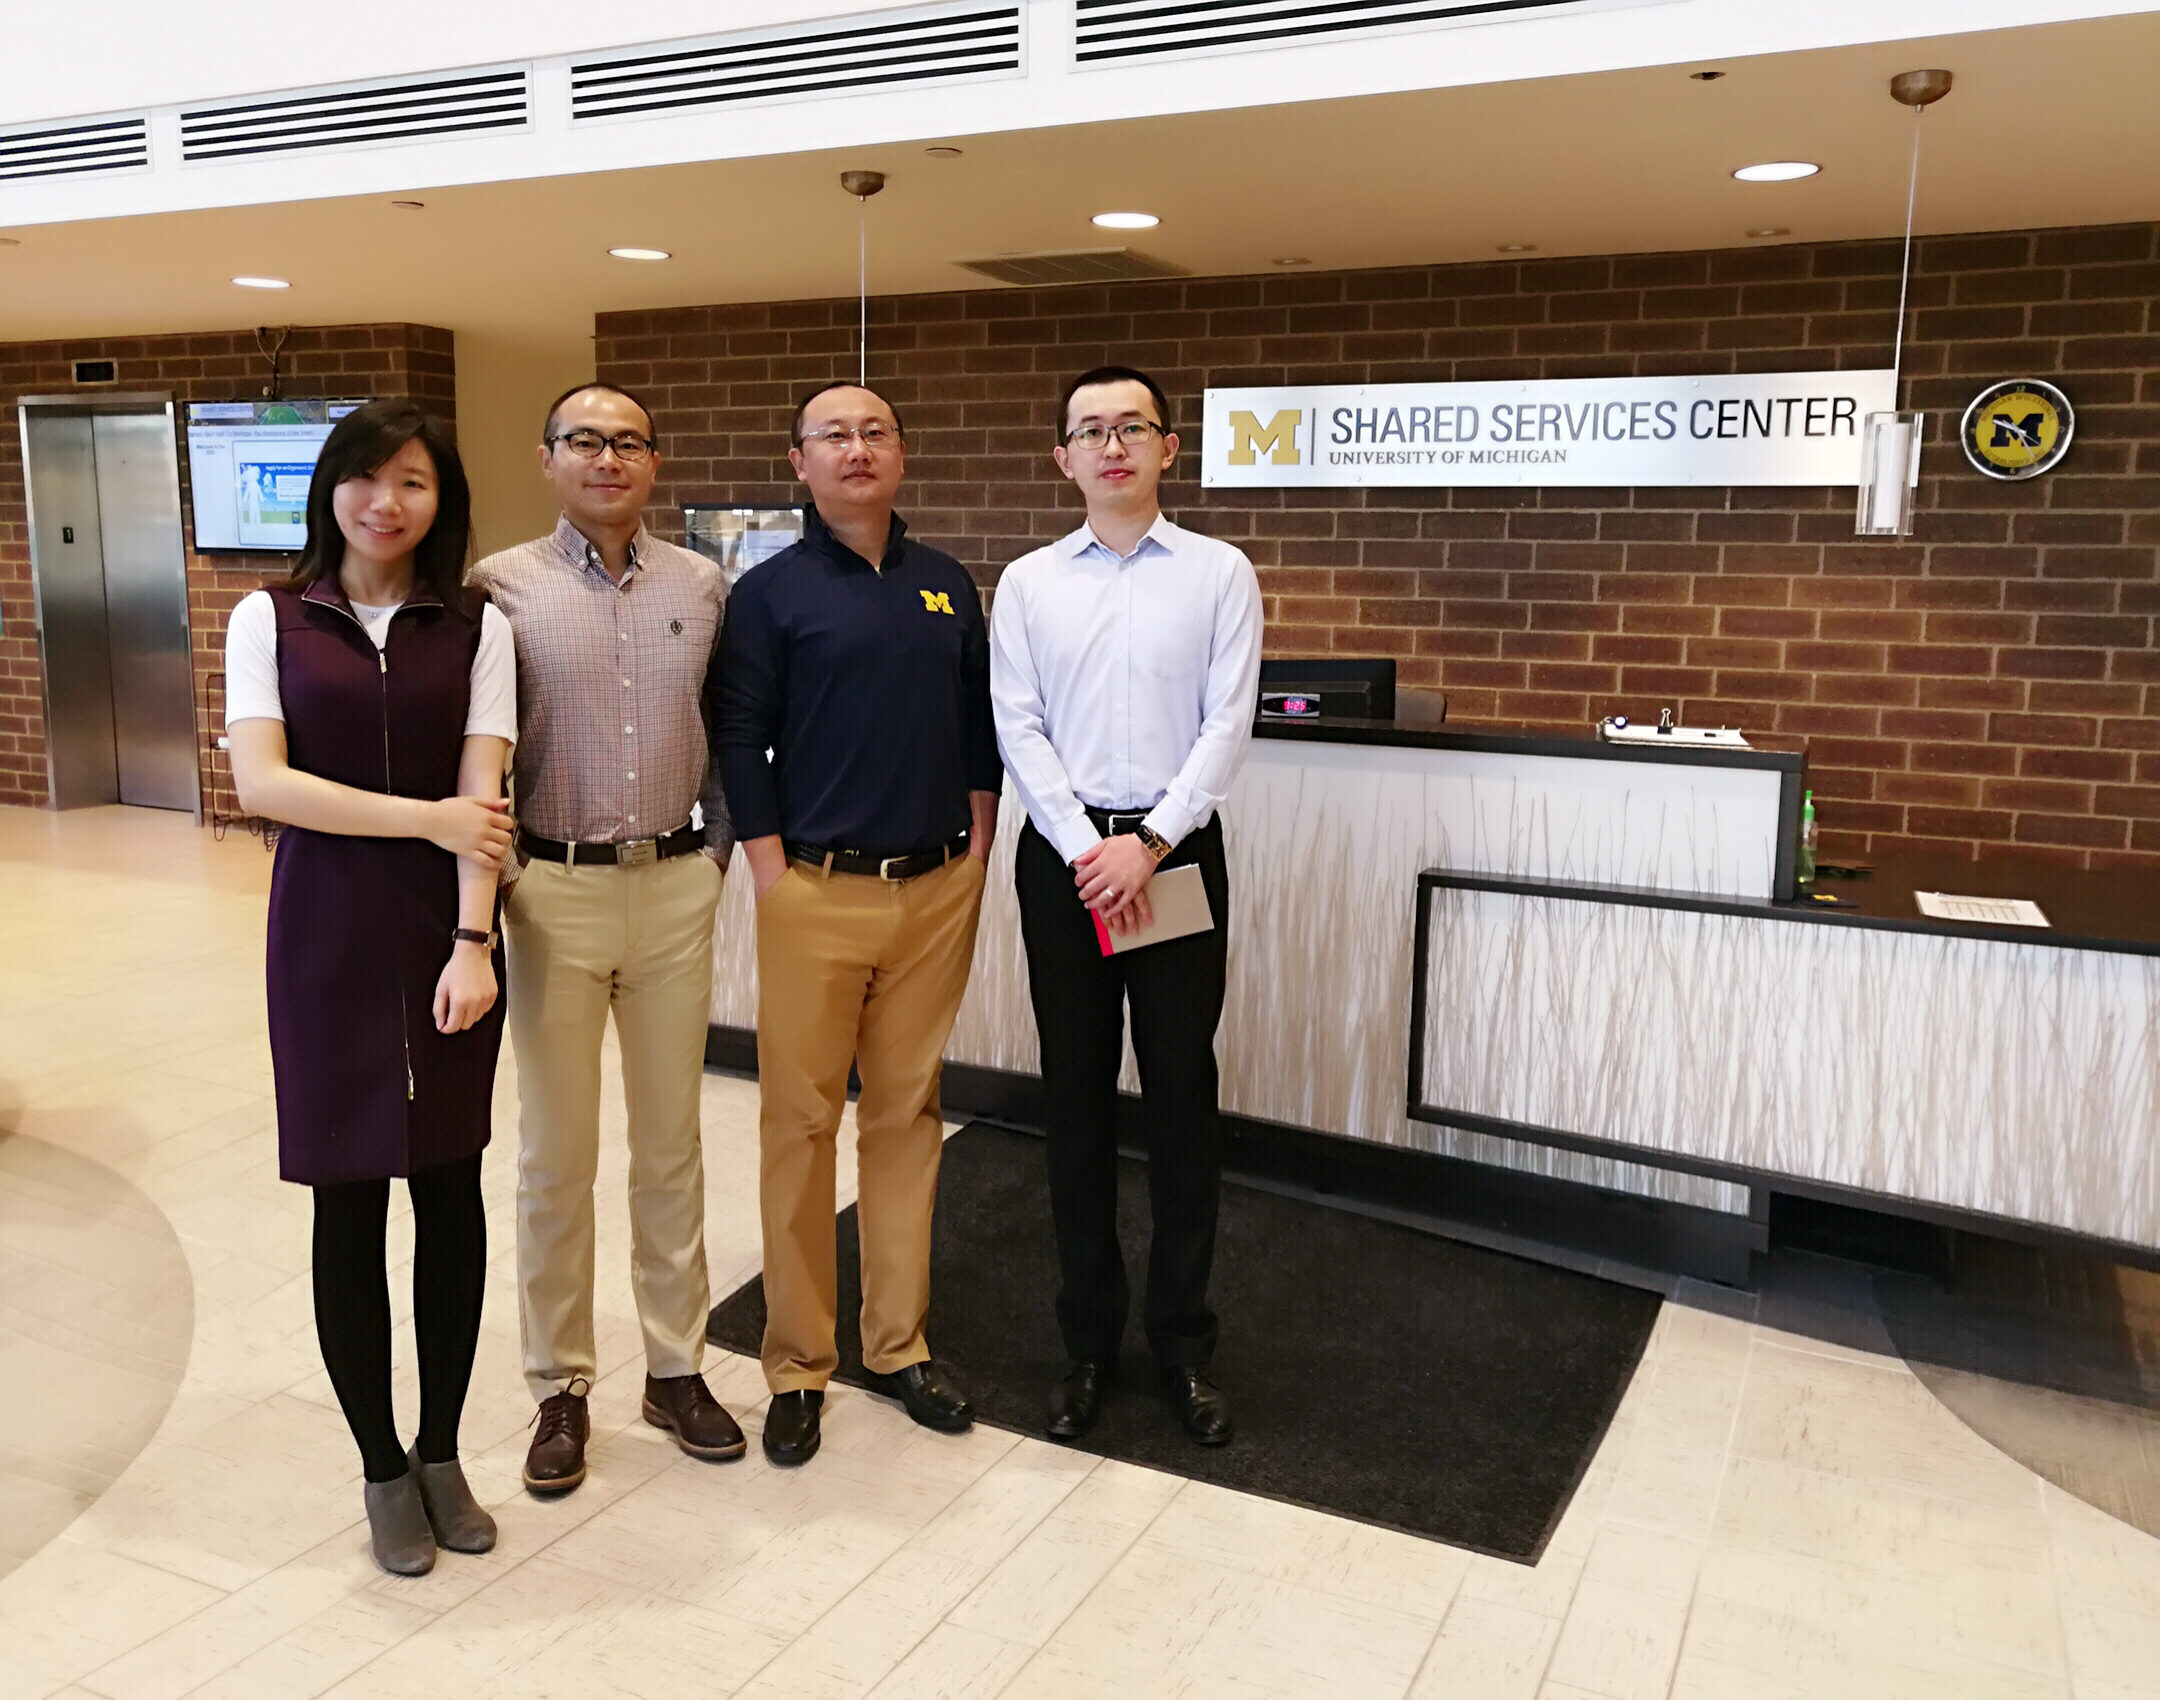 4 Ross School of Business graduate students at the SSC